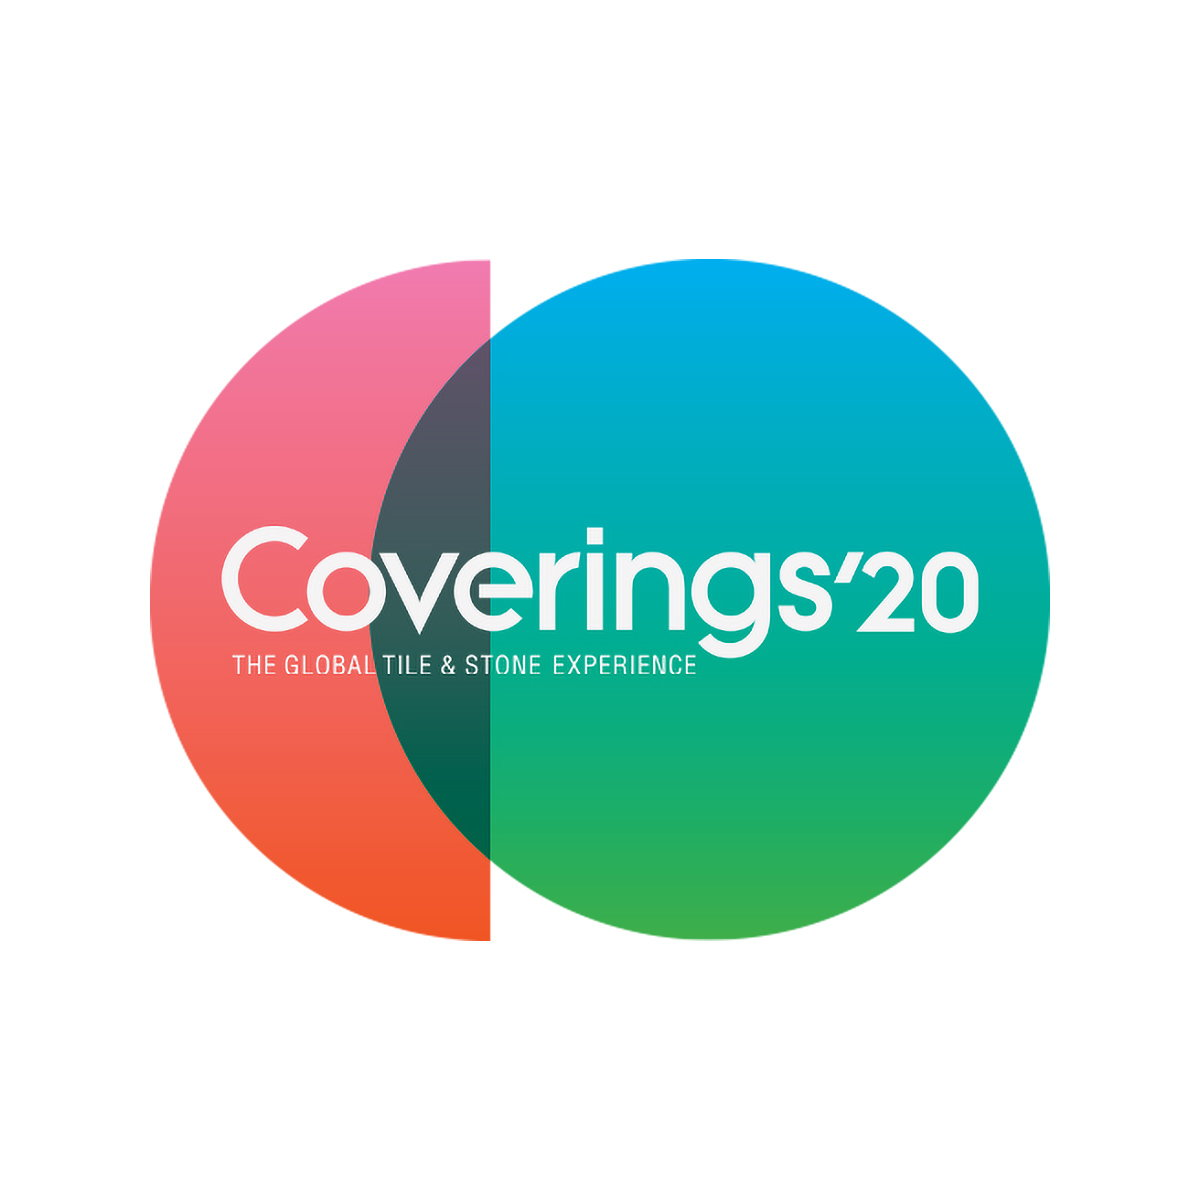 Coverings Connected - A Digital Experience for Coverings 2020